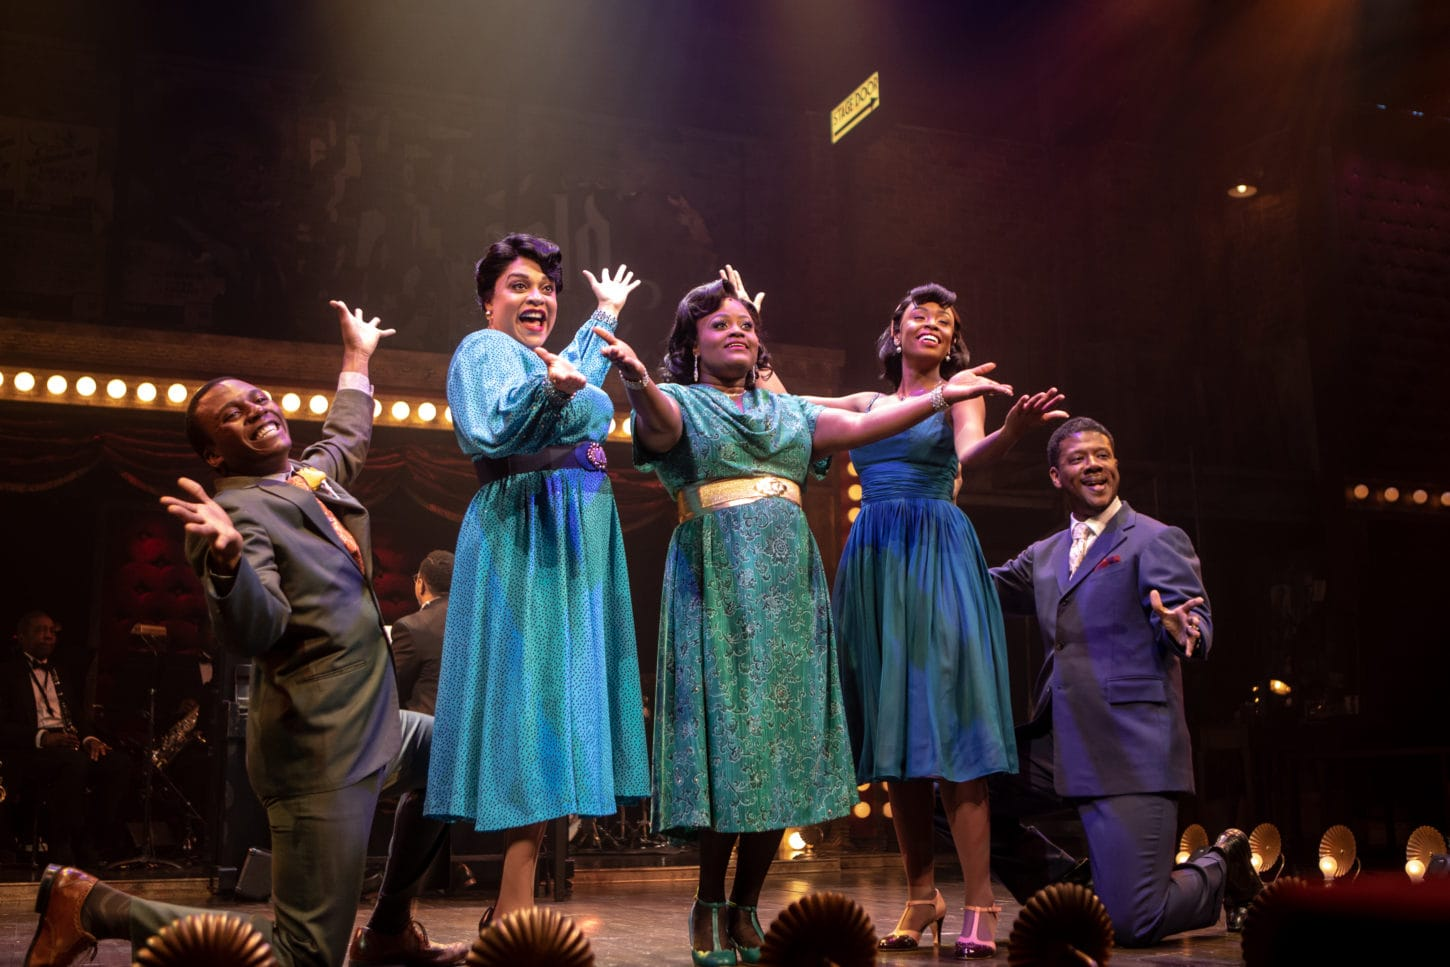 L-R: Solomon Parker III, Iyona Blake, Nova Y. Payton, Korinn Walfall, and Kevin McAllister in Ain't Misbehavin' at Signature Theatre. Photo by Christopher Mueller.